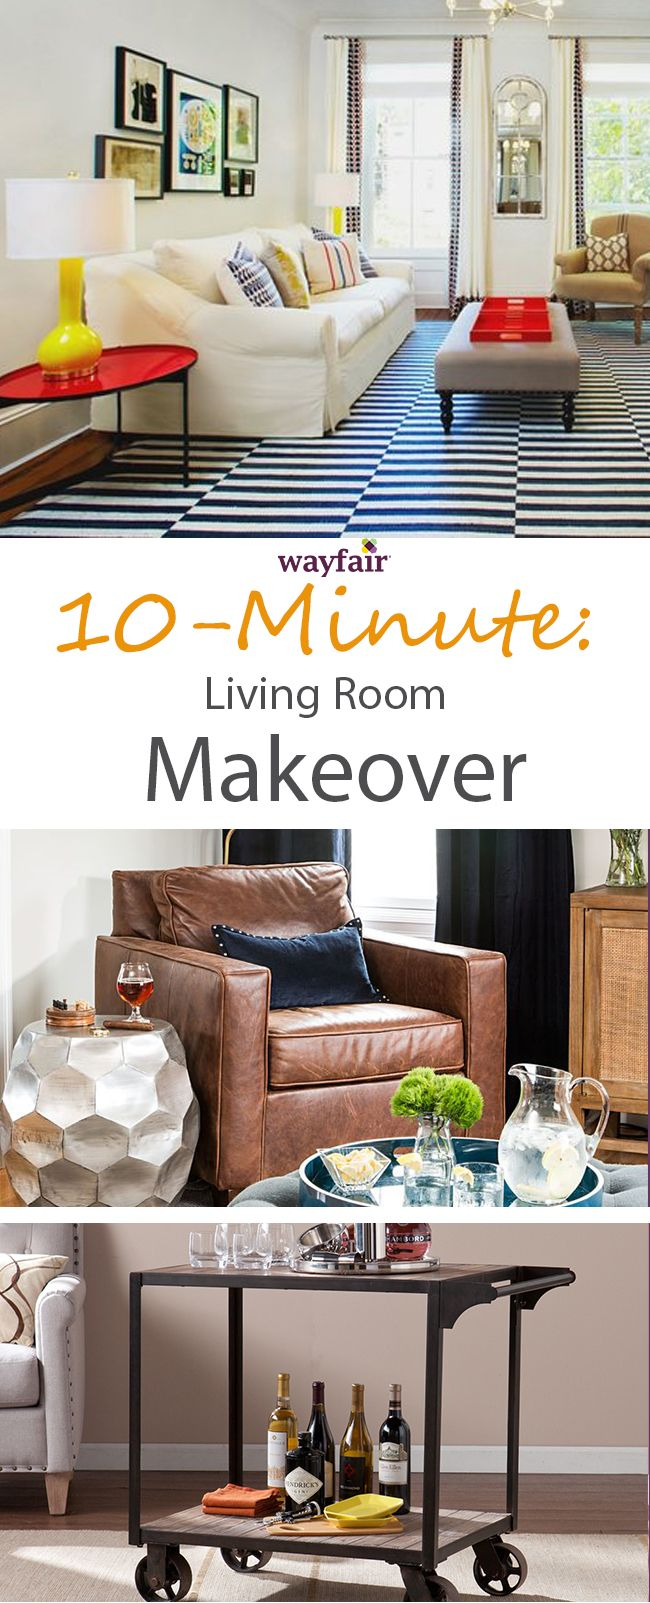 Wayfair 10 off first order - 10 Minute Living Room Makeover It Only Takes 10 Minutes To Implement One Or